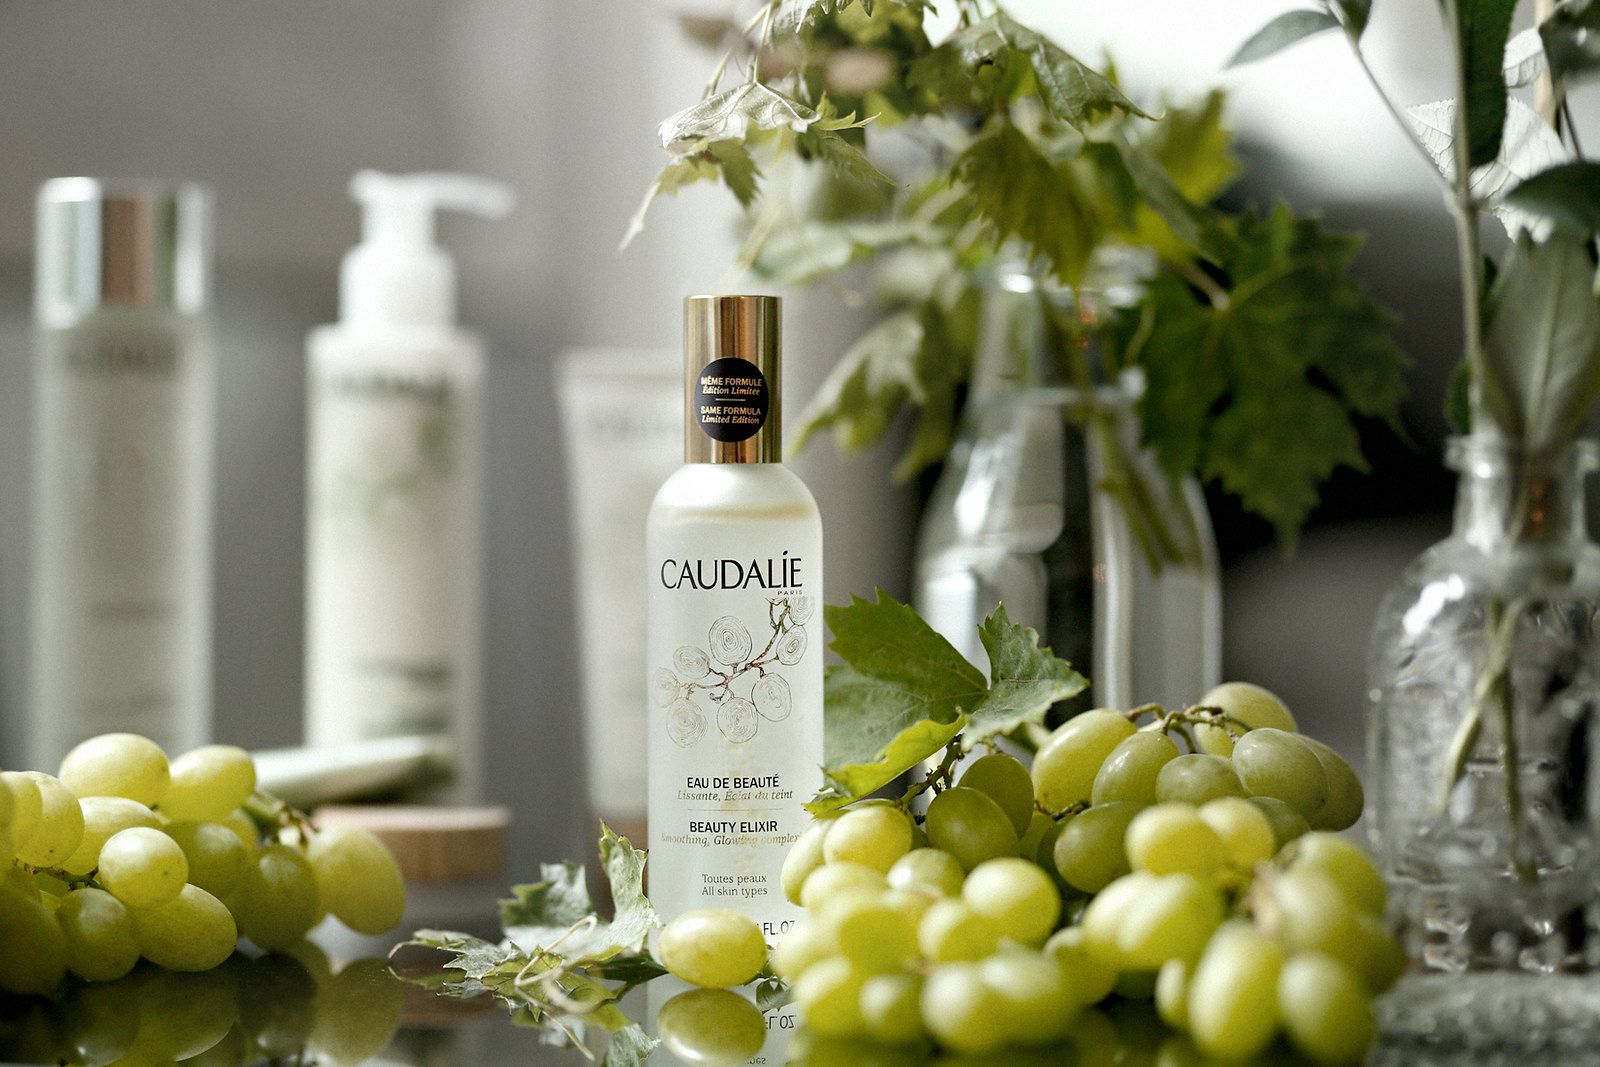 caudalie eau de beauté beauty elixir french beauty wine grapes weintrauben vino vines nature cosmetics mist water spray rosie huntington campaign summer francaise beautyblogger germanblogger cats & dogs beautyblog ricarda schernus düsseldorf 4